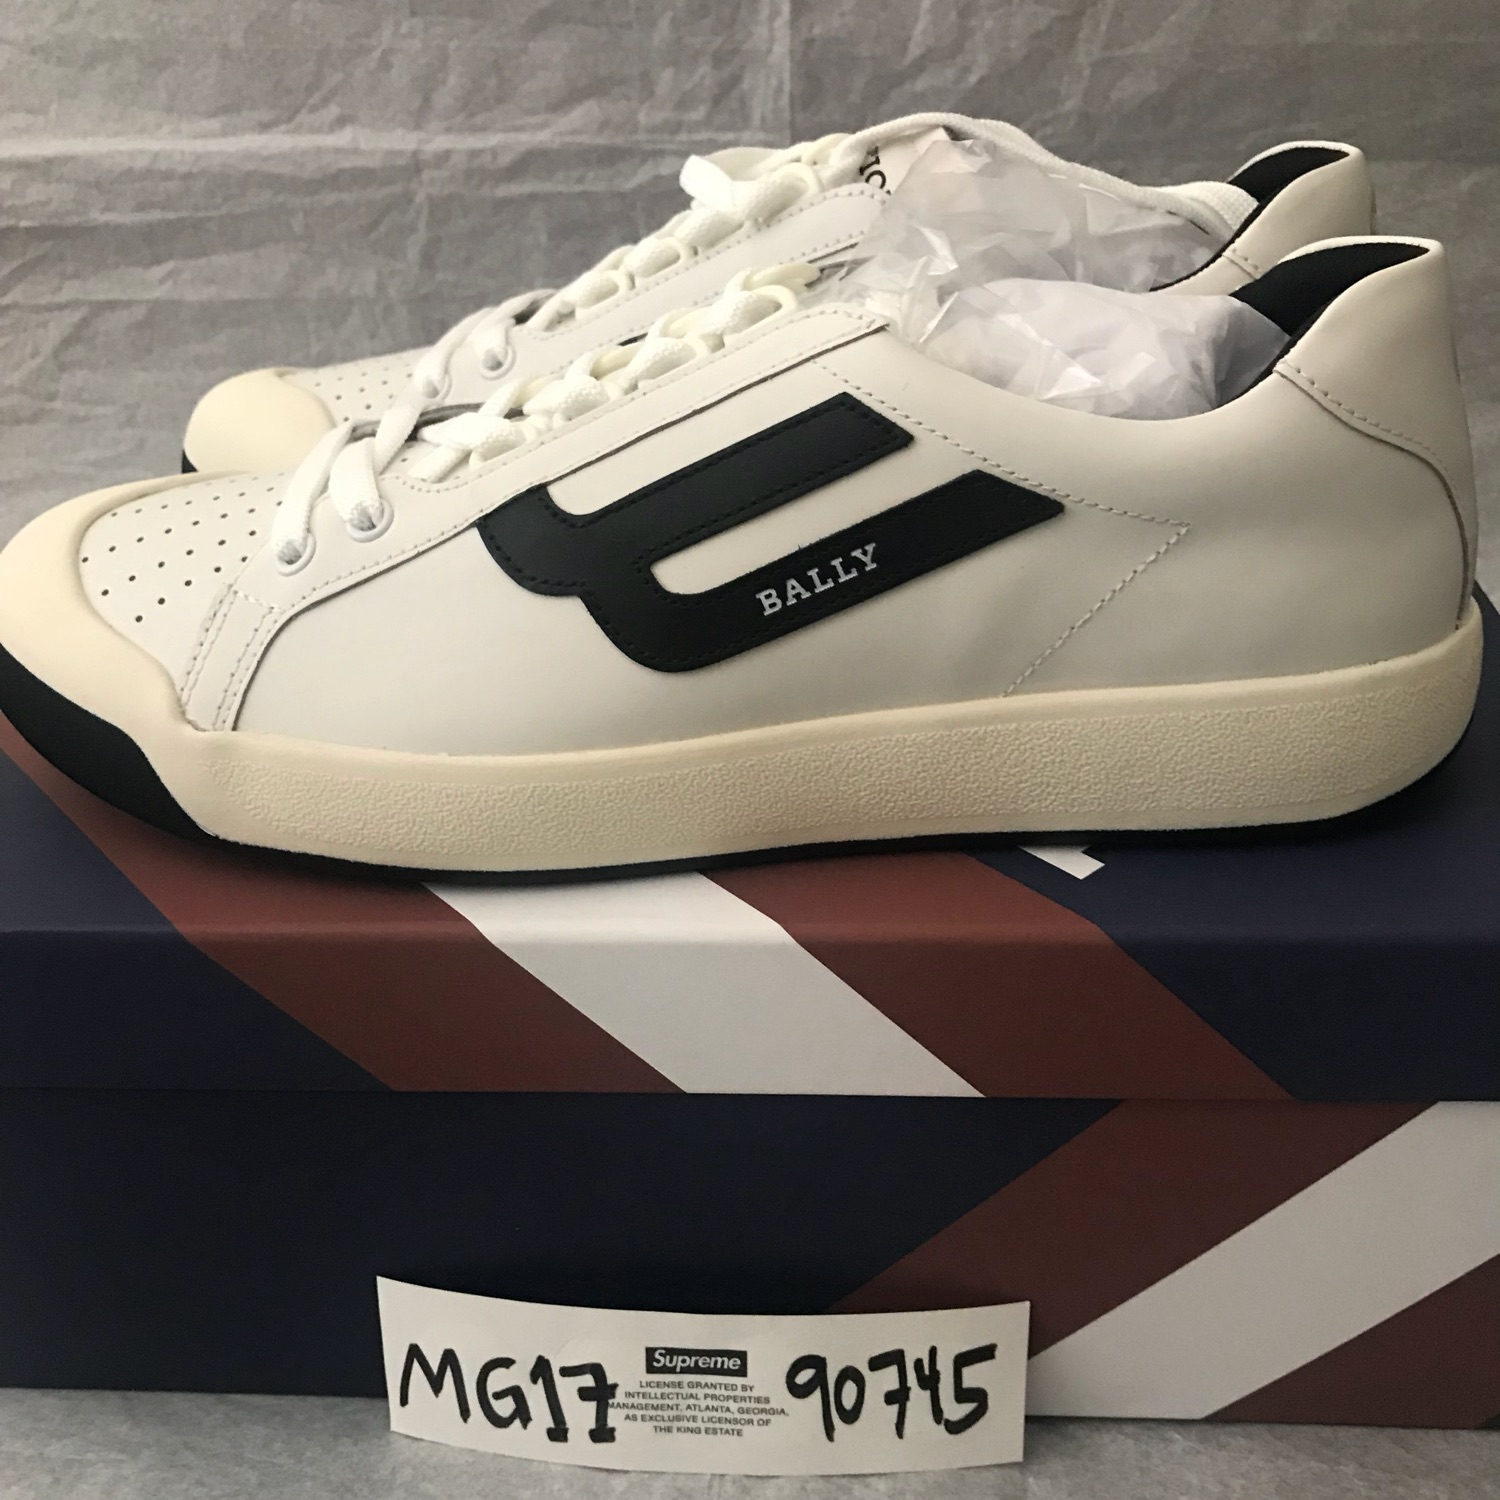 Bally New Competition Retro Sneakers